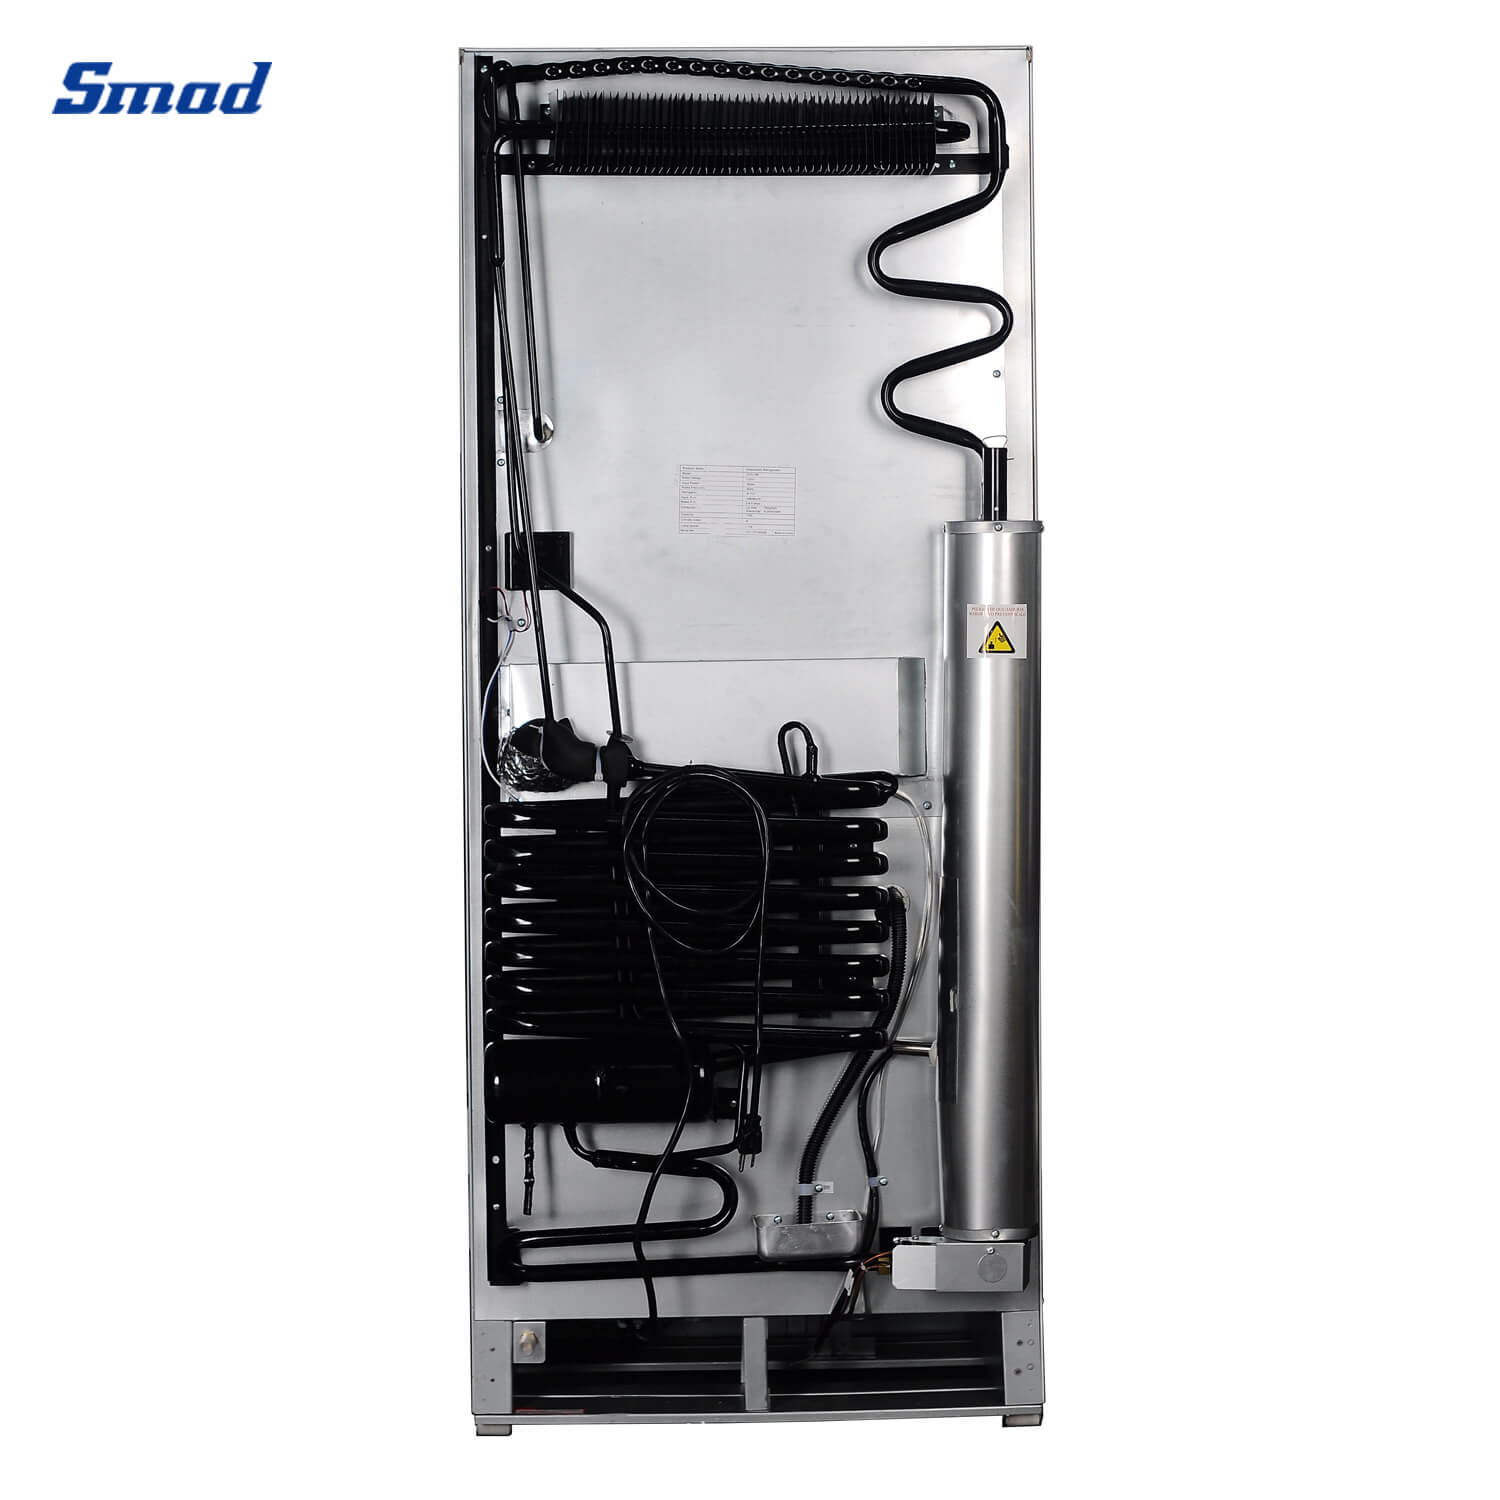 Smad gas refrigerator back and its absorption system